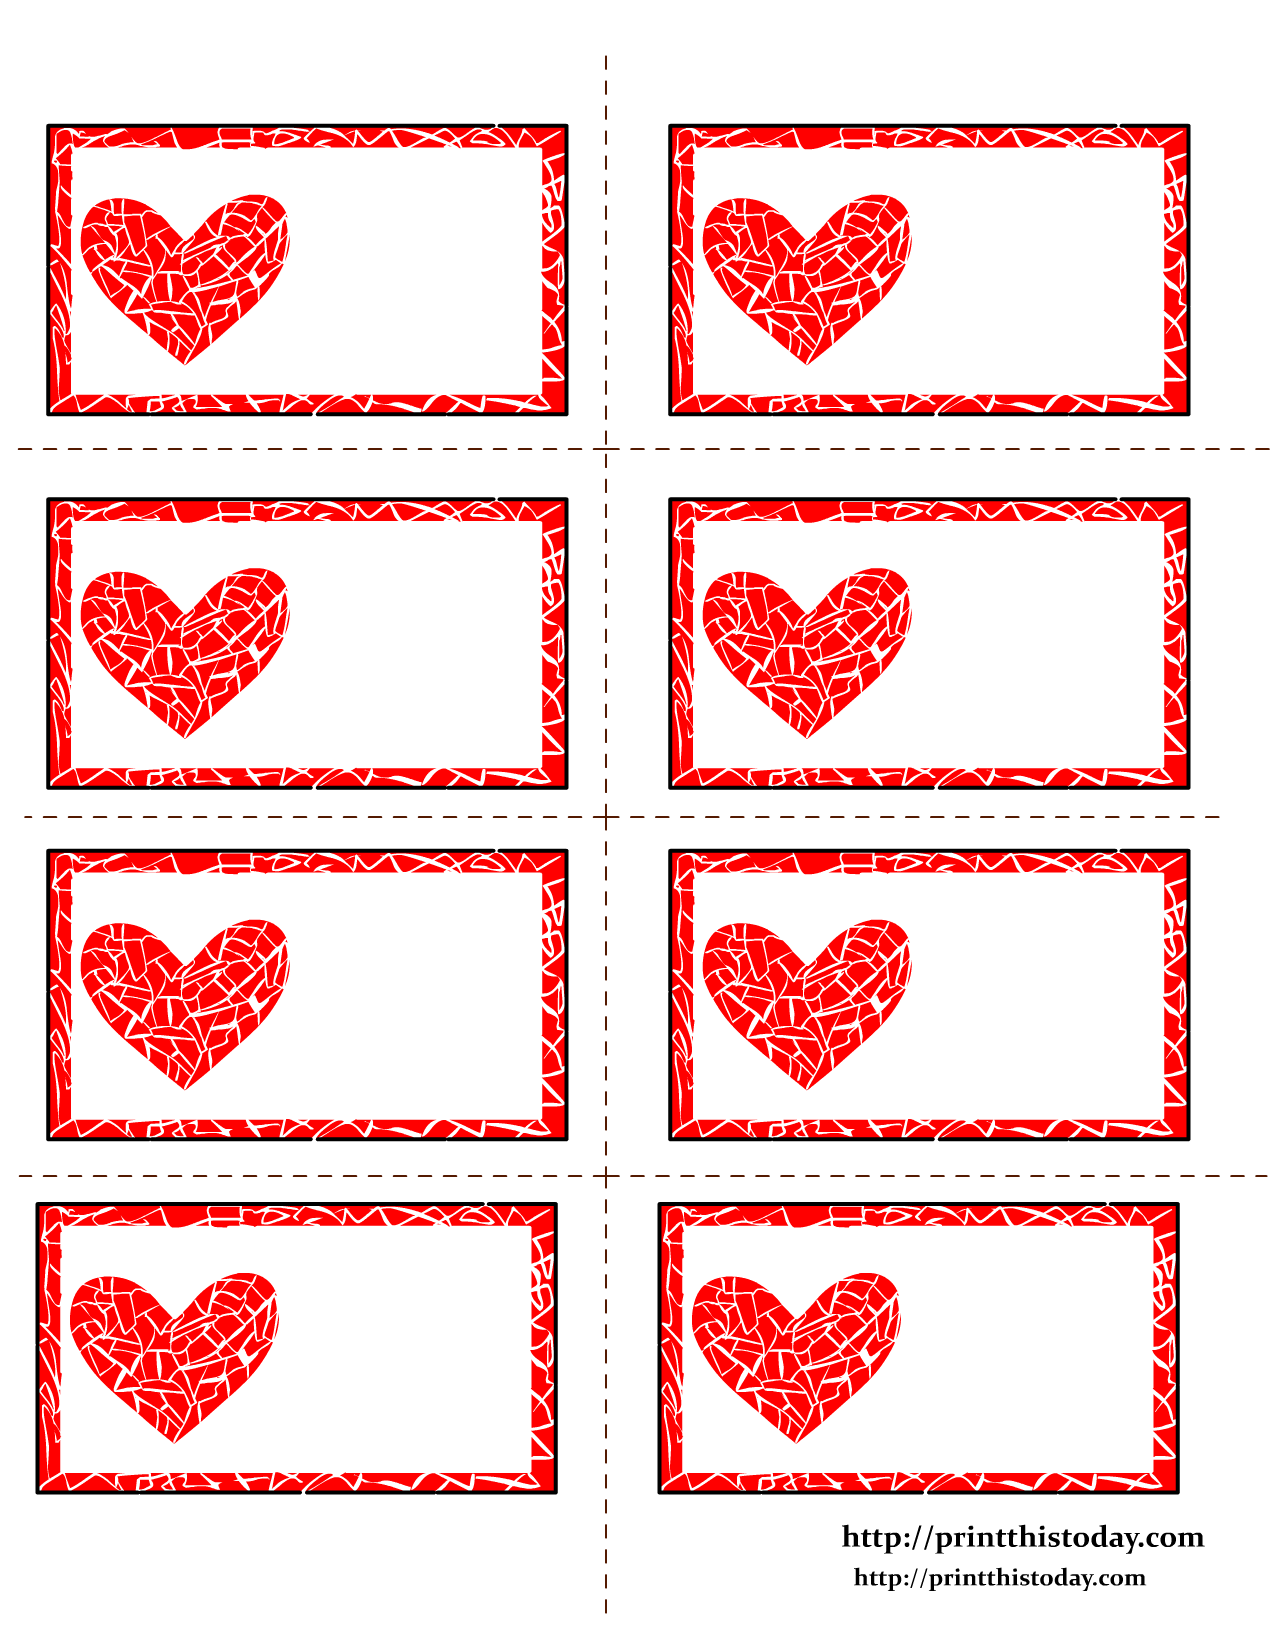 11 Images of Free Printable Heart Labels